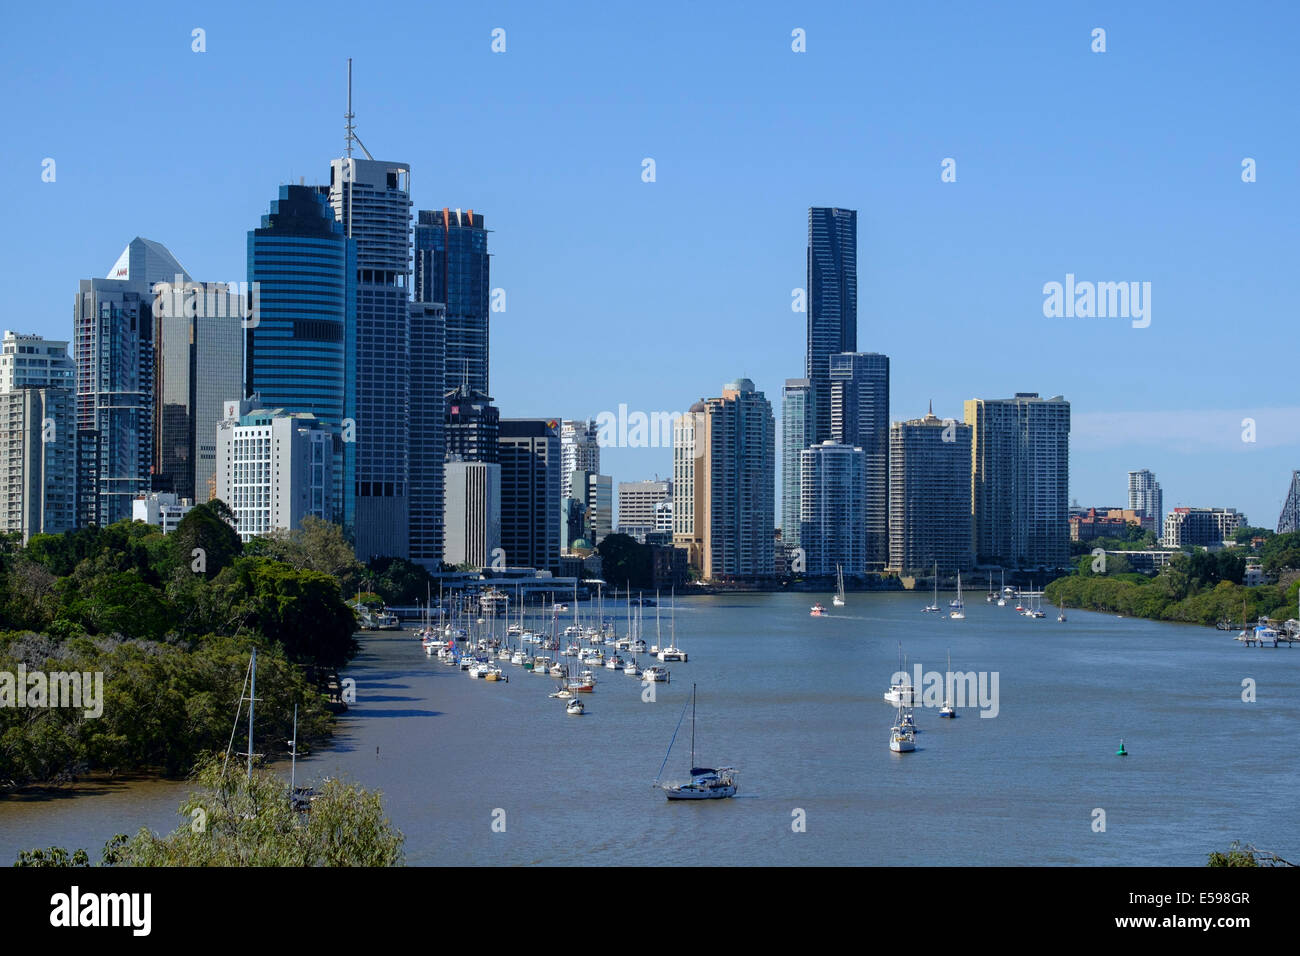 Brisbane views at Kangaroo Point - Stock Image